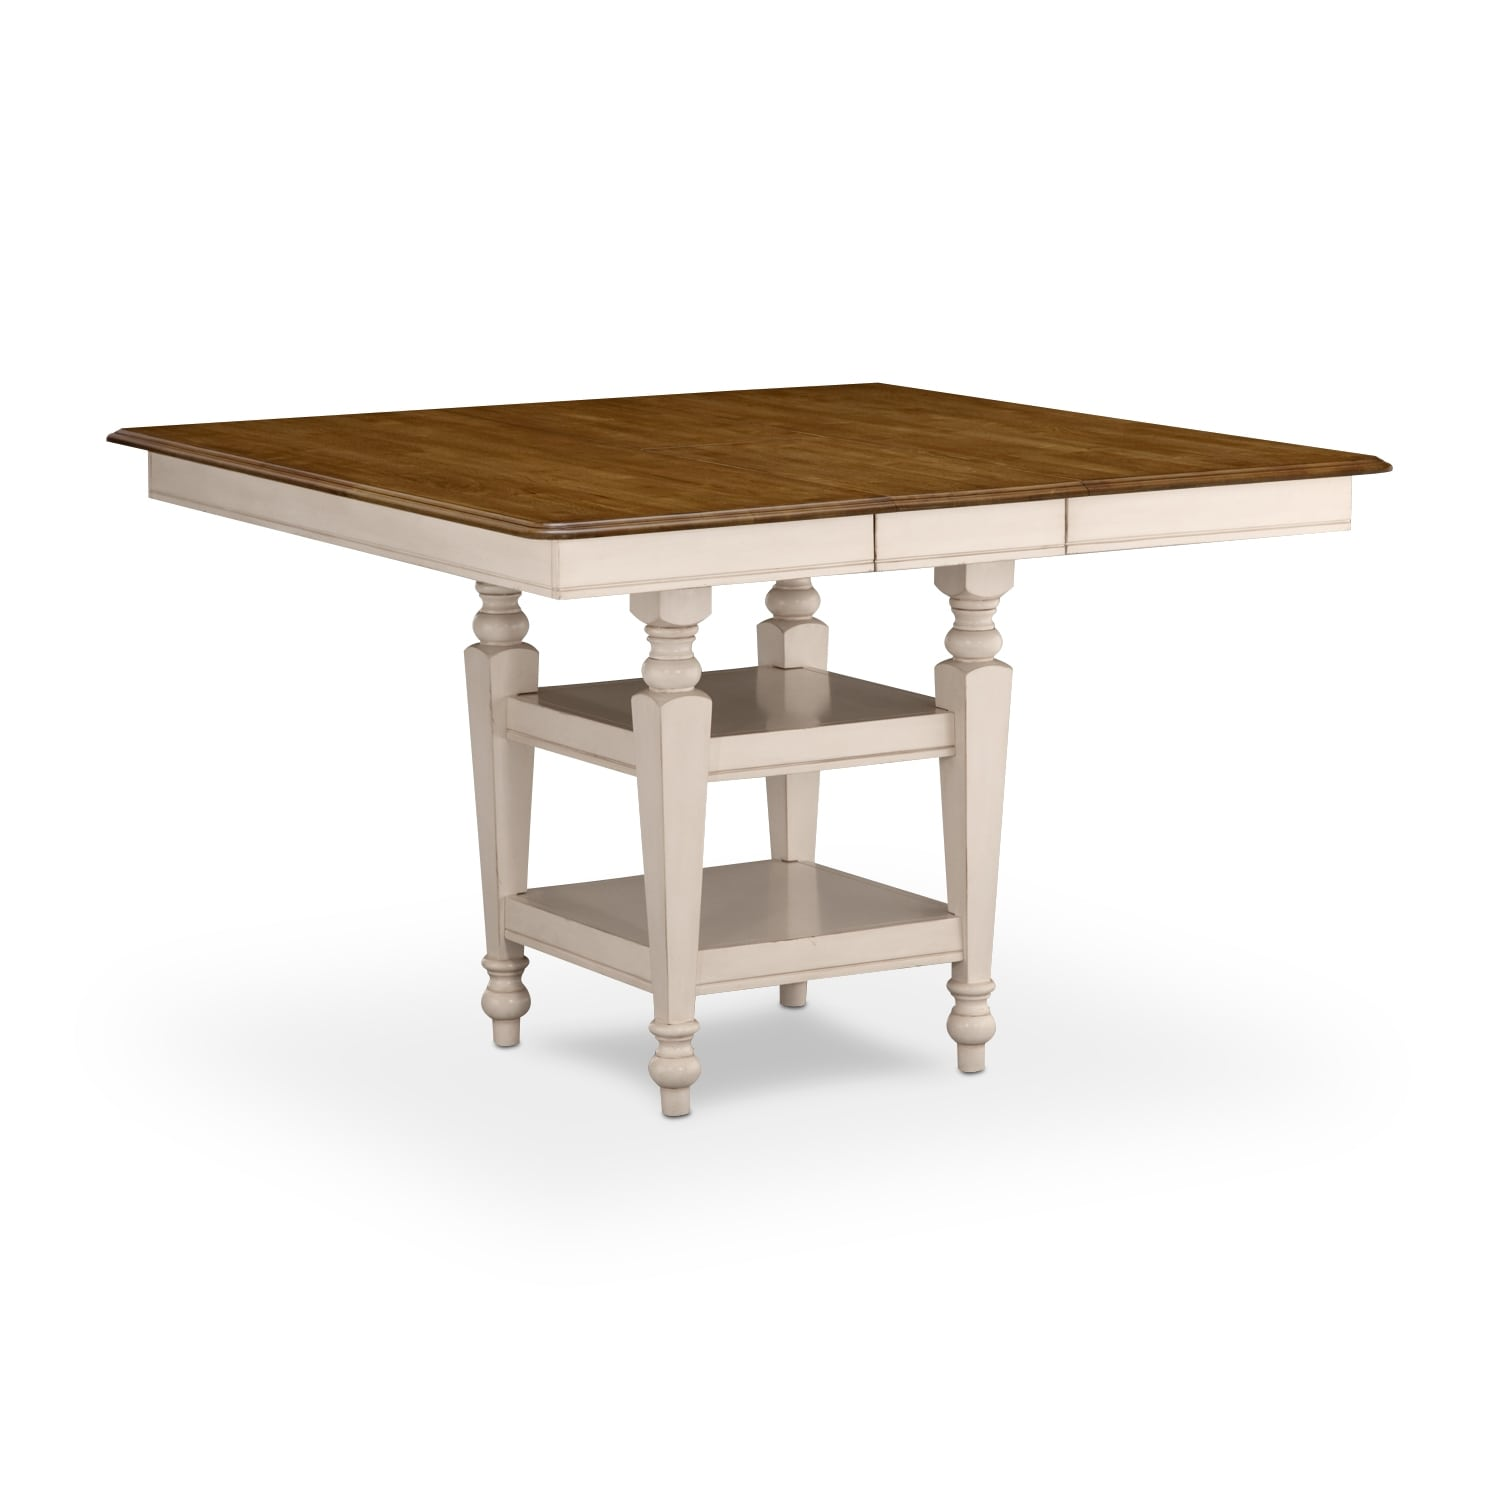 [Chesapeake II Counter-Height Table]